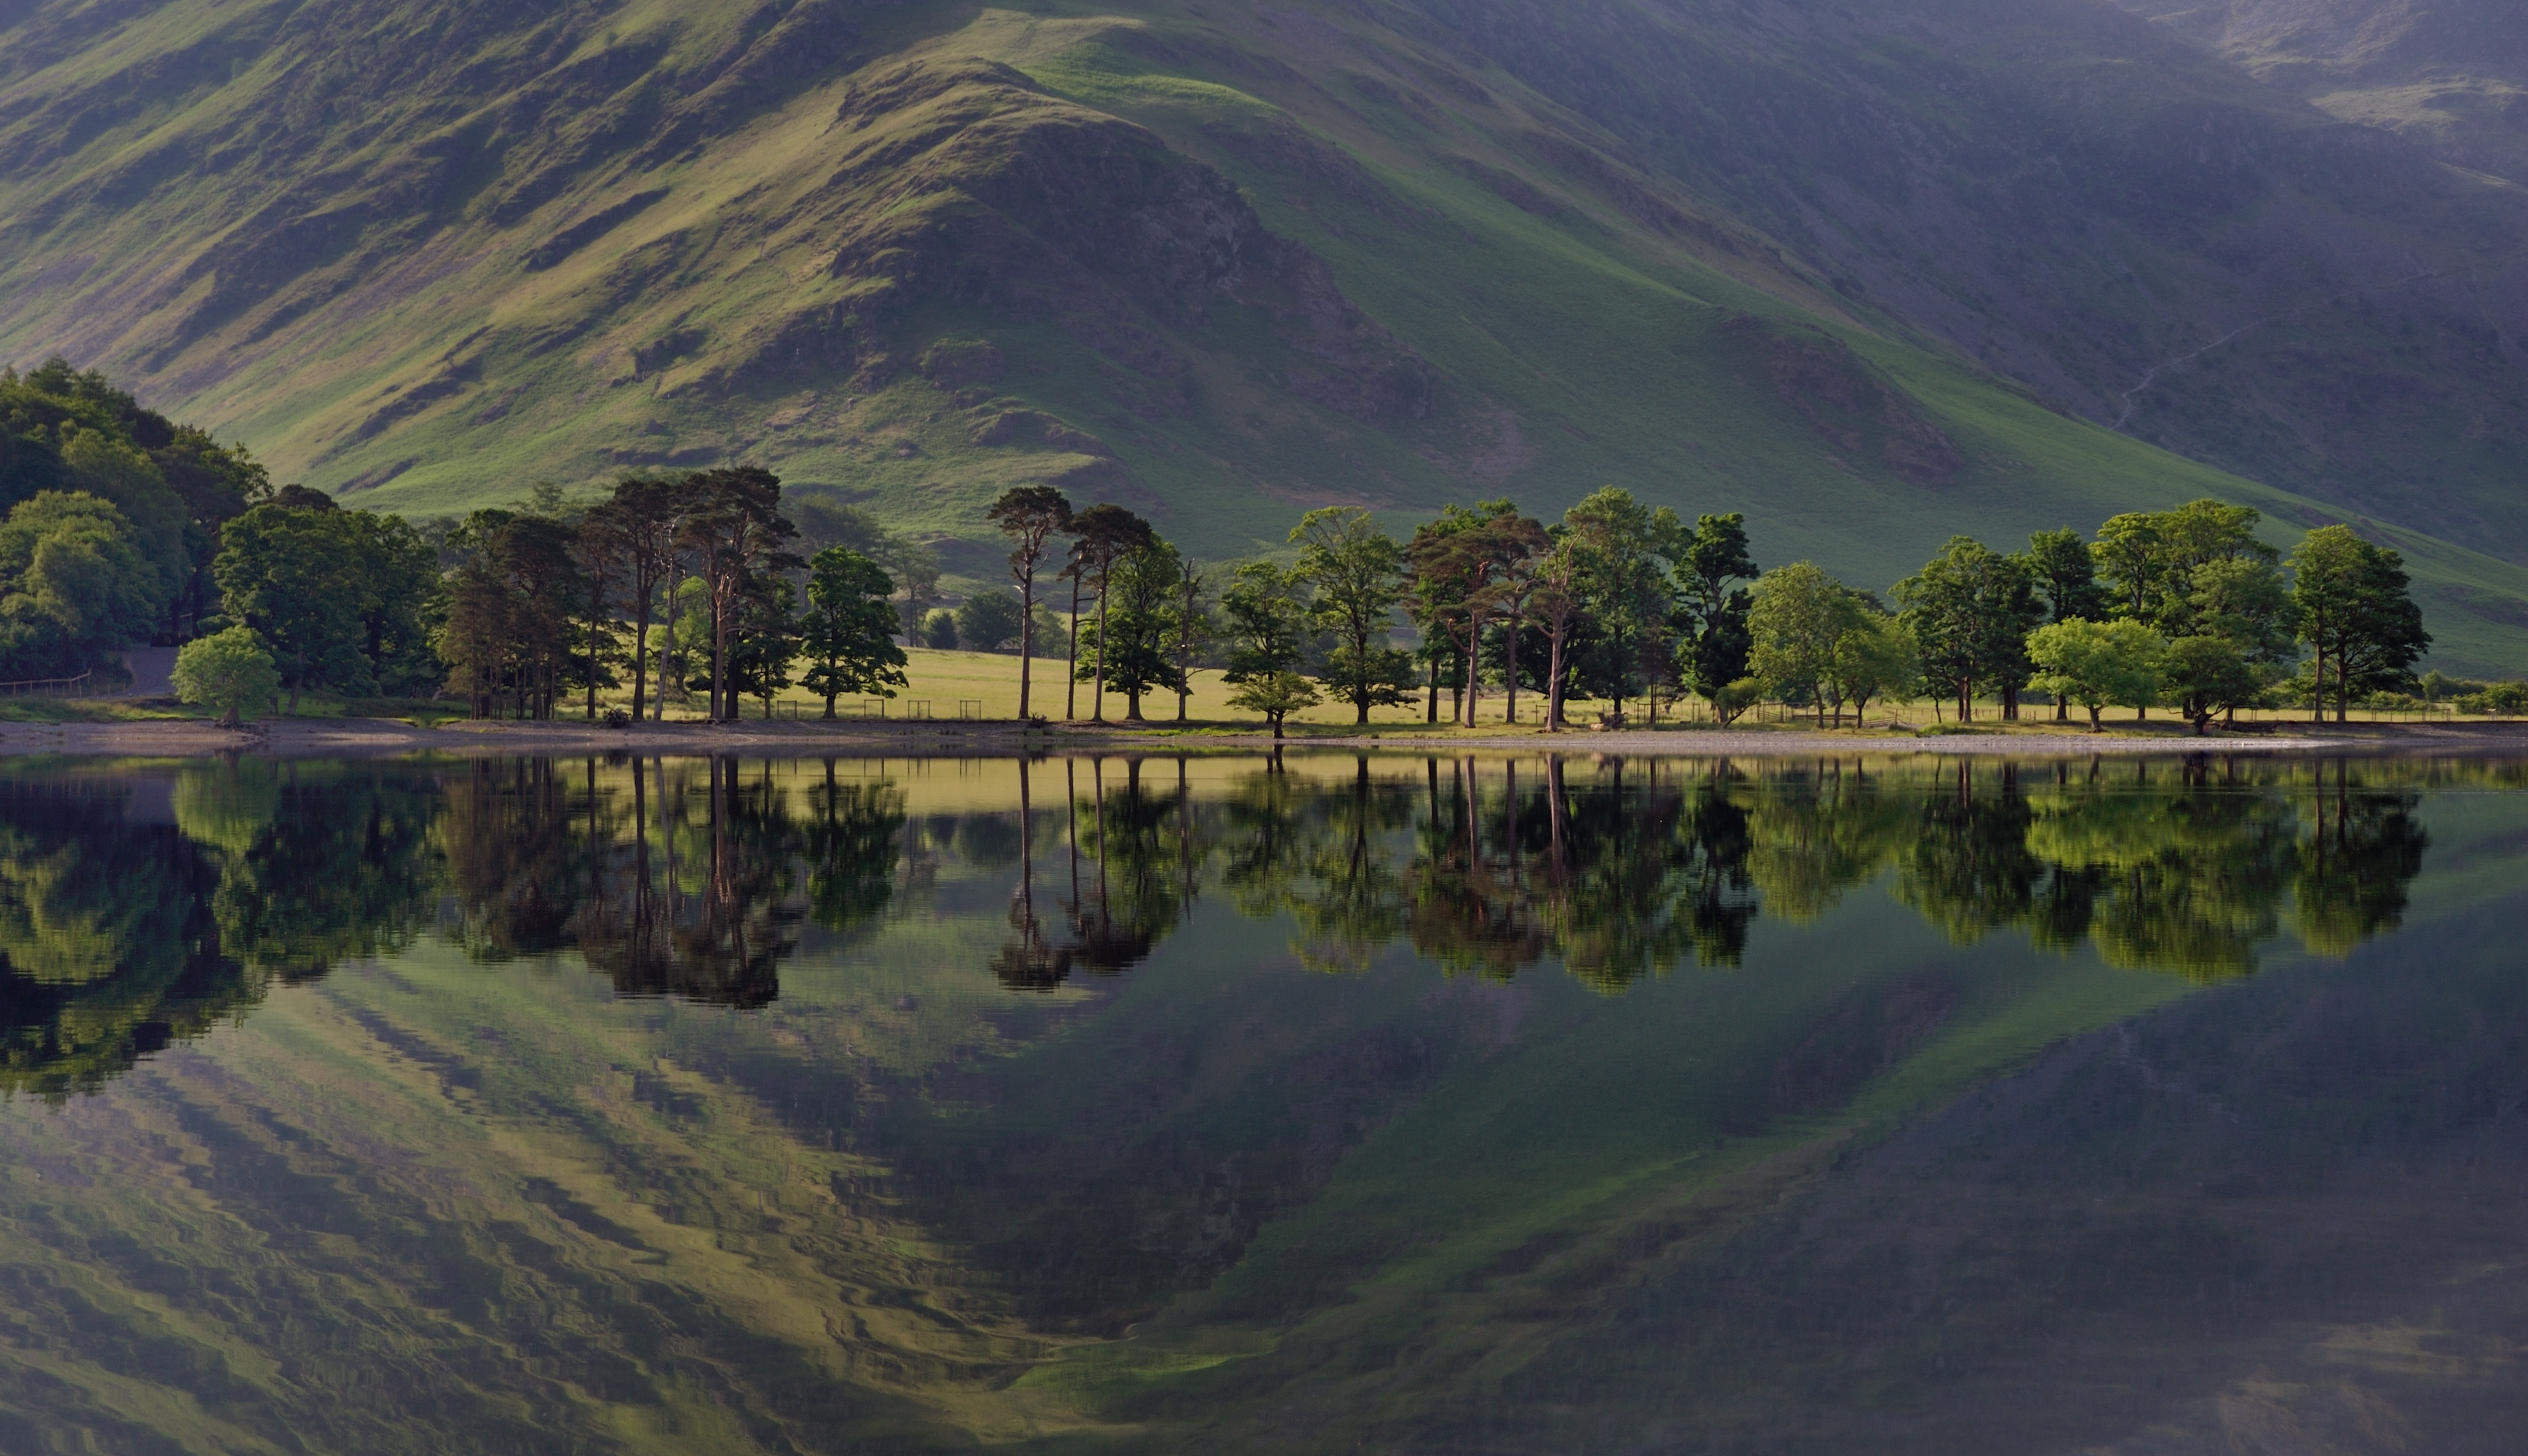 Sentinels in reflection